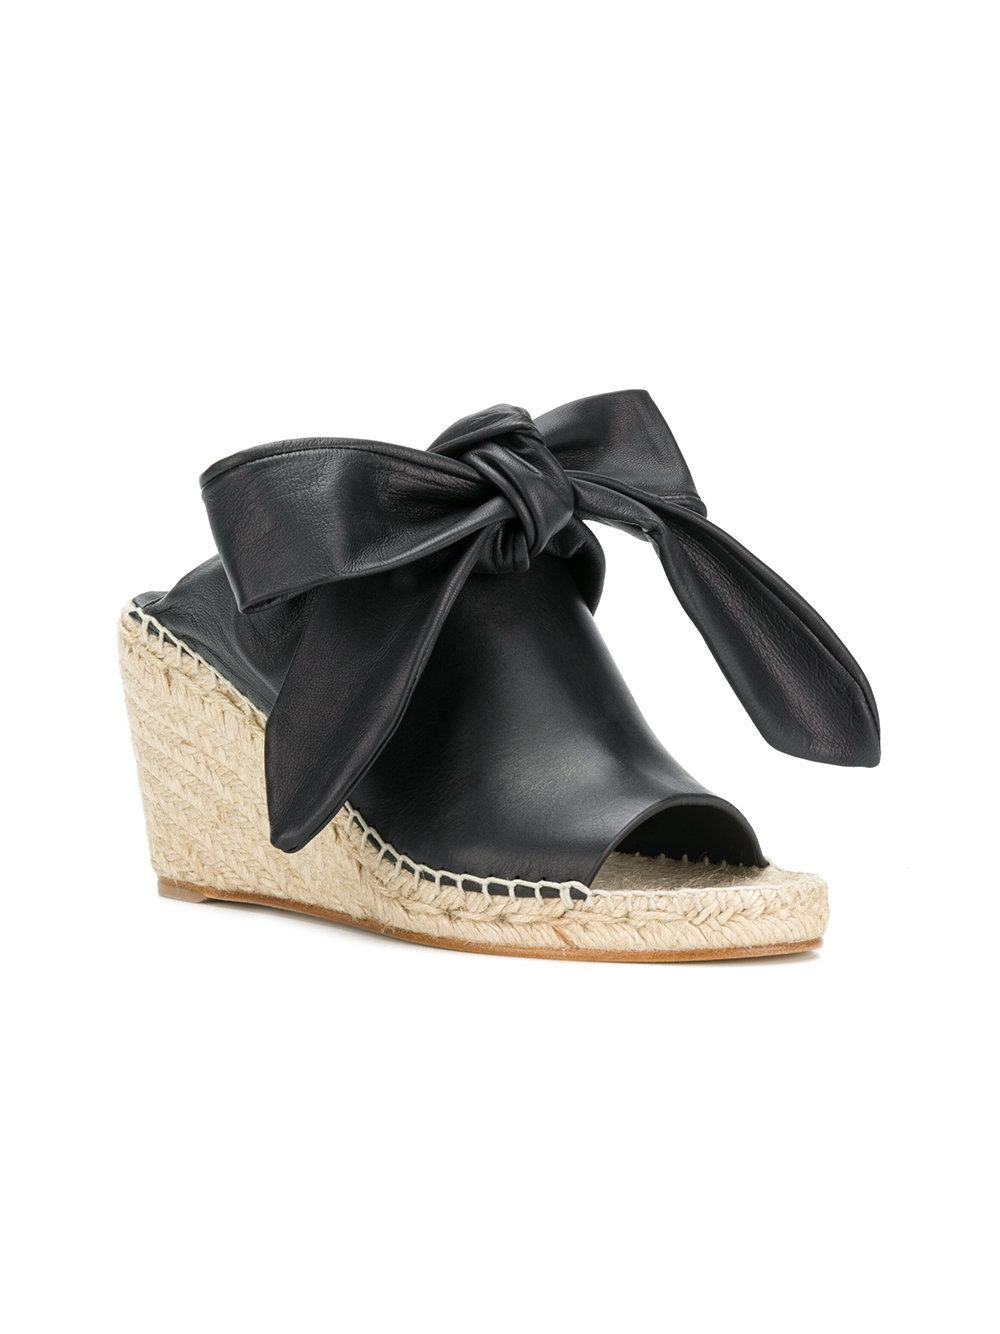 Céline Espadrille Nappa Lamb and Calf Wedges Size EU 38 (Approx. US 8) Regular (M, B)